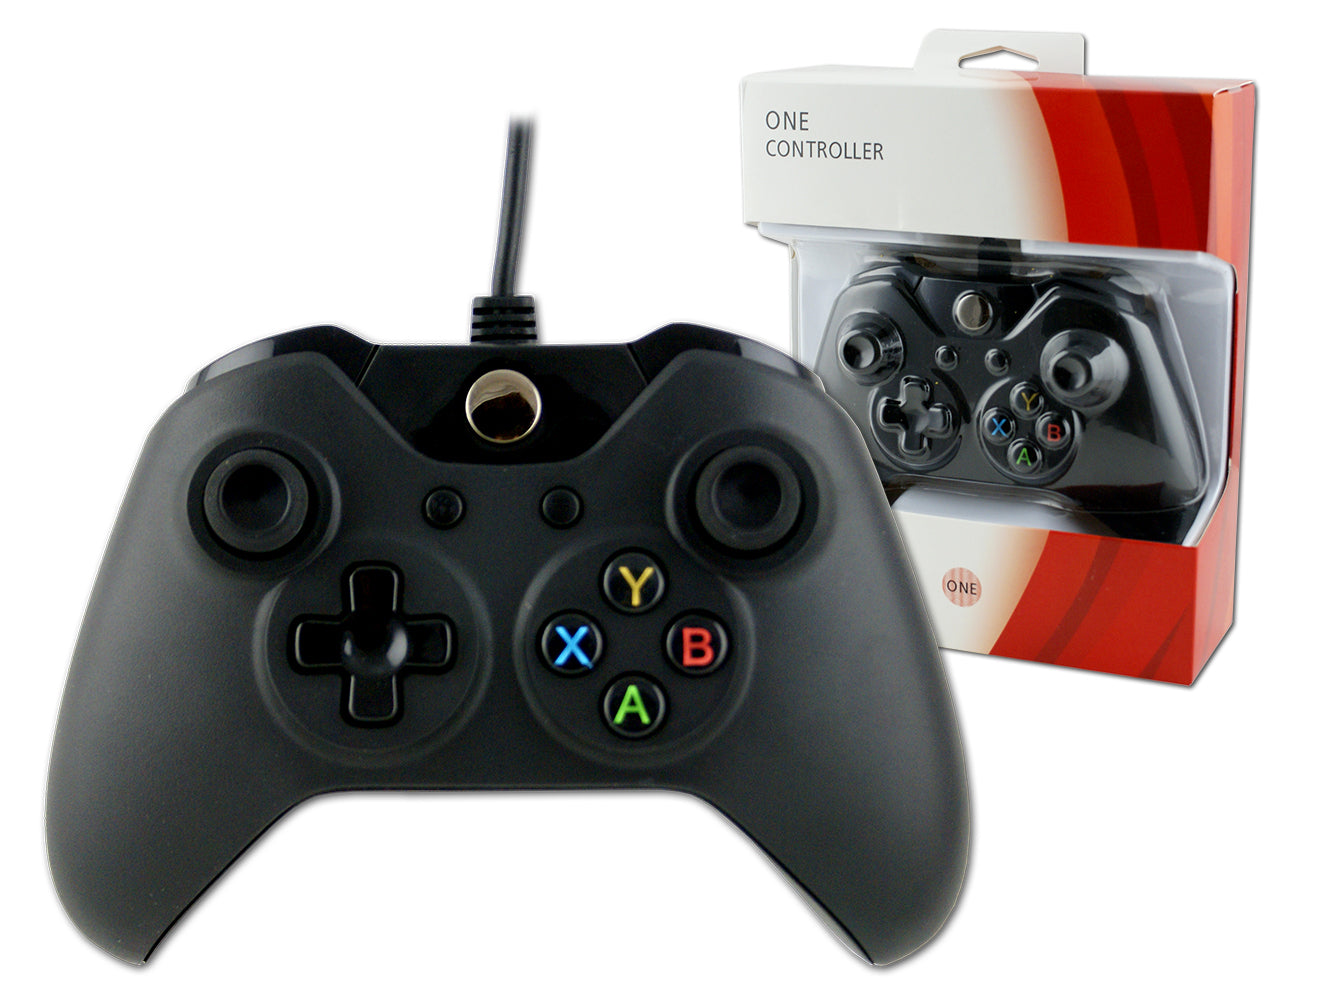 Xbox One Wired Gaming Controller - GAM-JOY-XBOX1